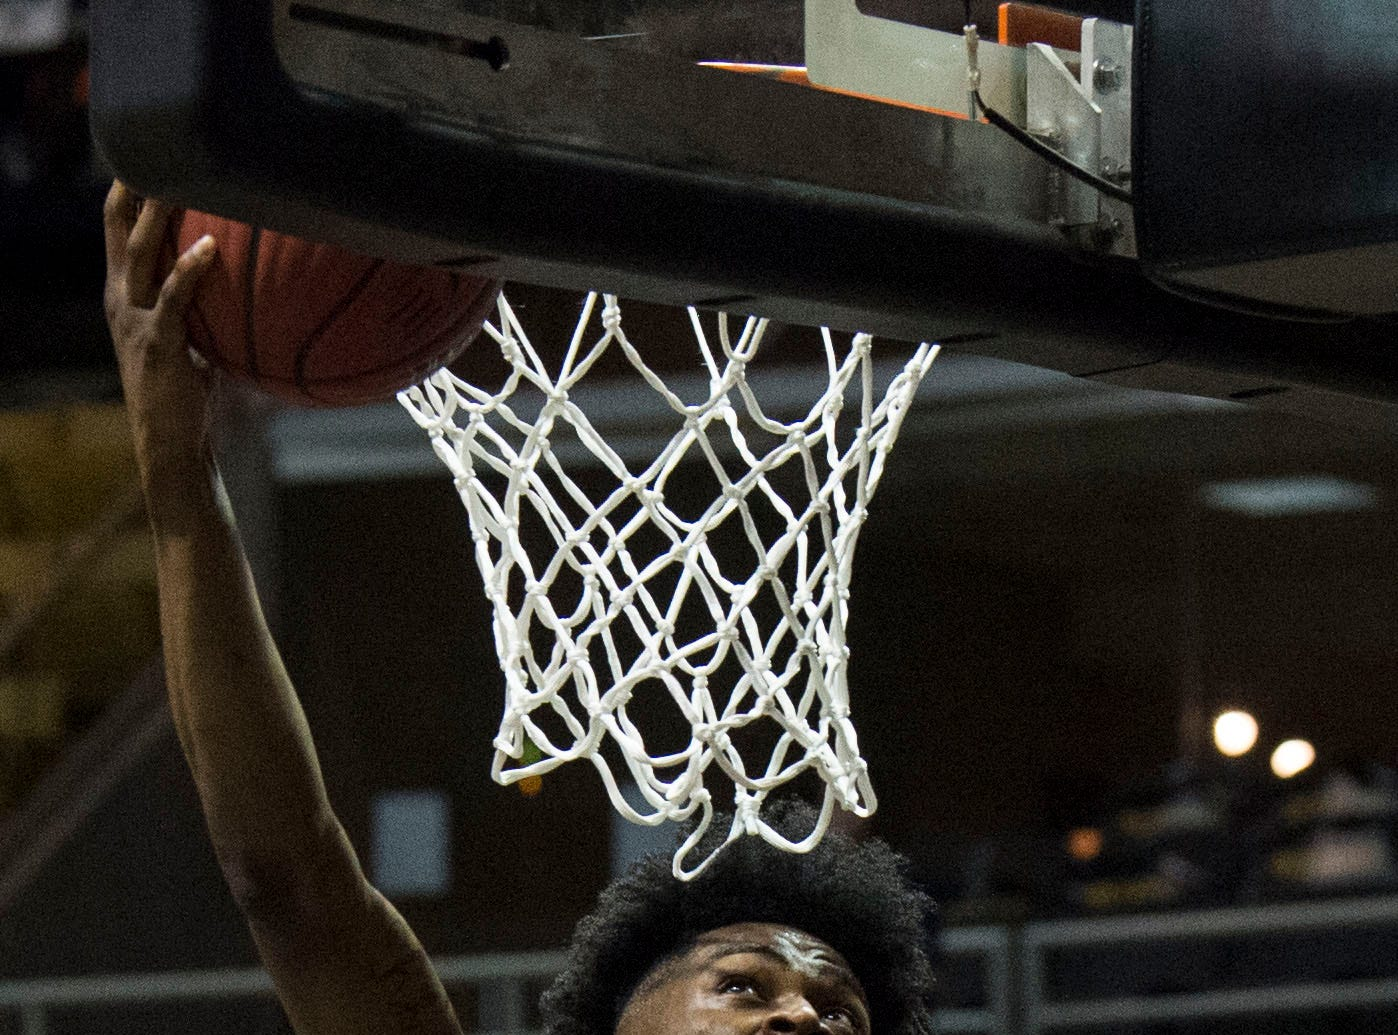 Alabama's DeAntoni Gordon (12) goes up for a layup during the Alabama-Mississippi All-Star game at the Dunn-Oliver Acadome in Montgomery, Ala., on Friday, March 15, 2019. Alabama All-stars defeated the Mississippi All-stars 107-90.